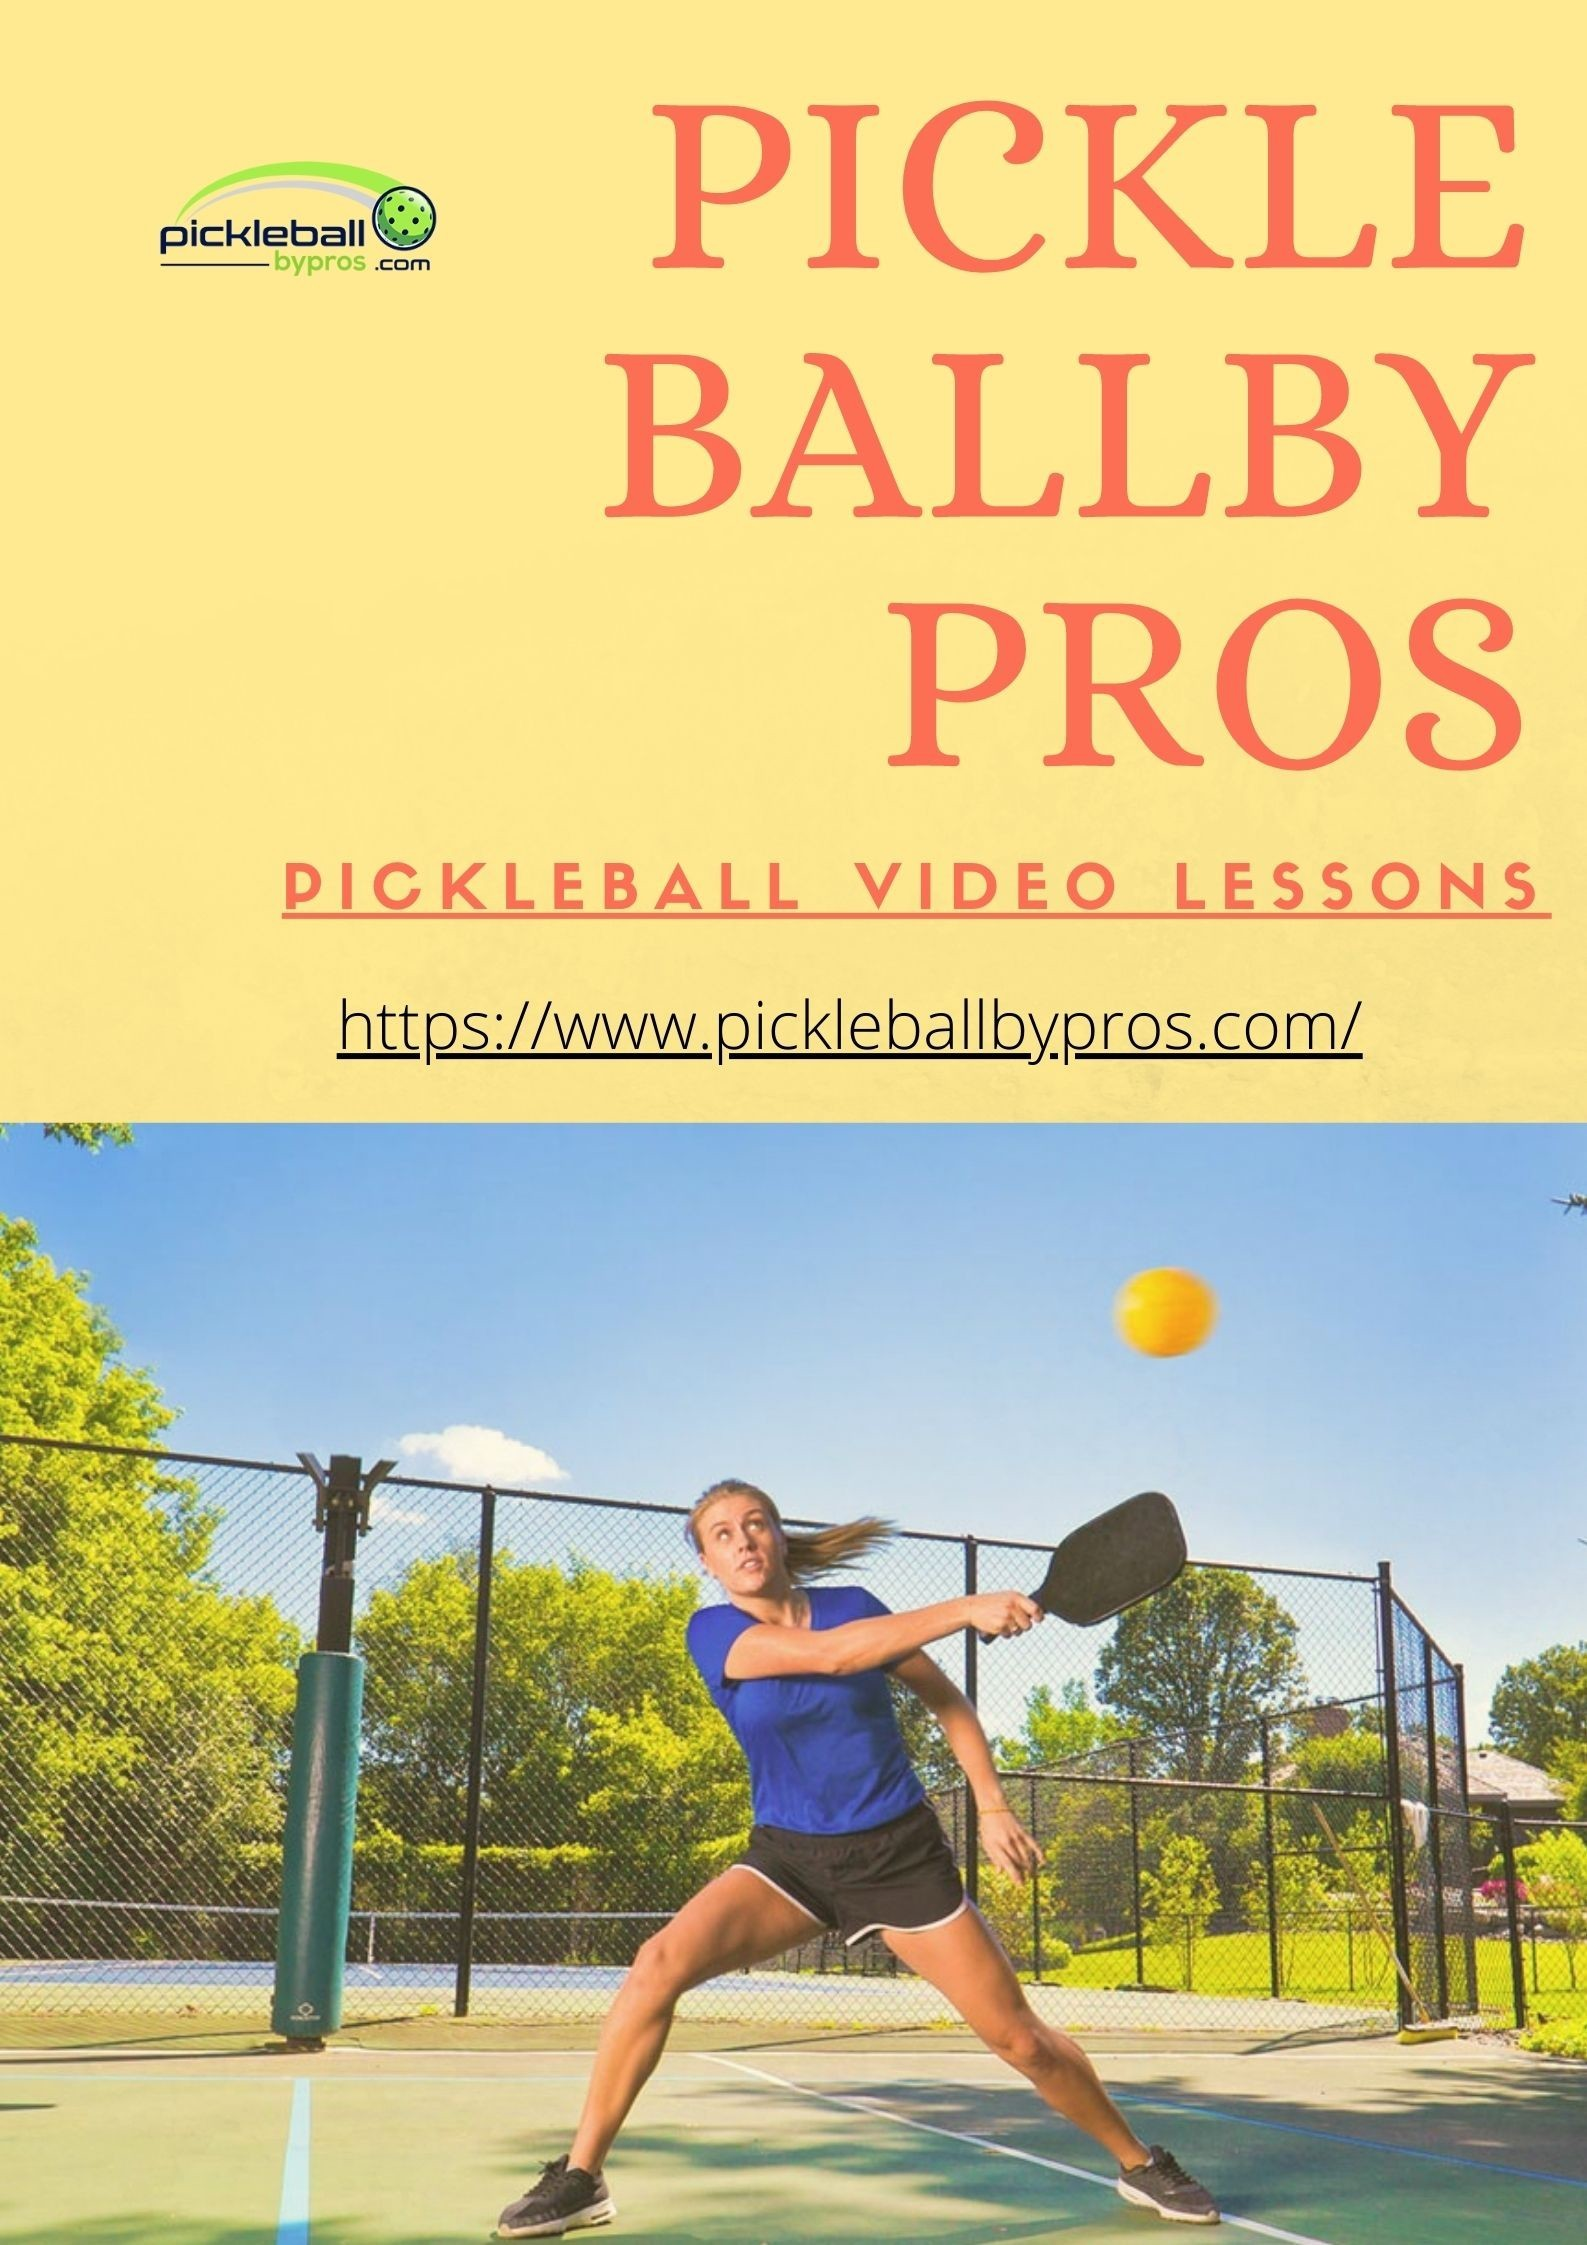 A Beginner's Guide to Playing Pickleball | PickleballByPros